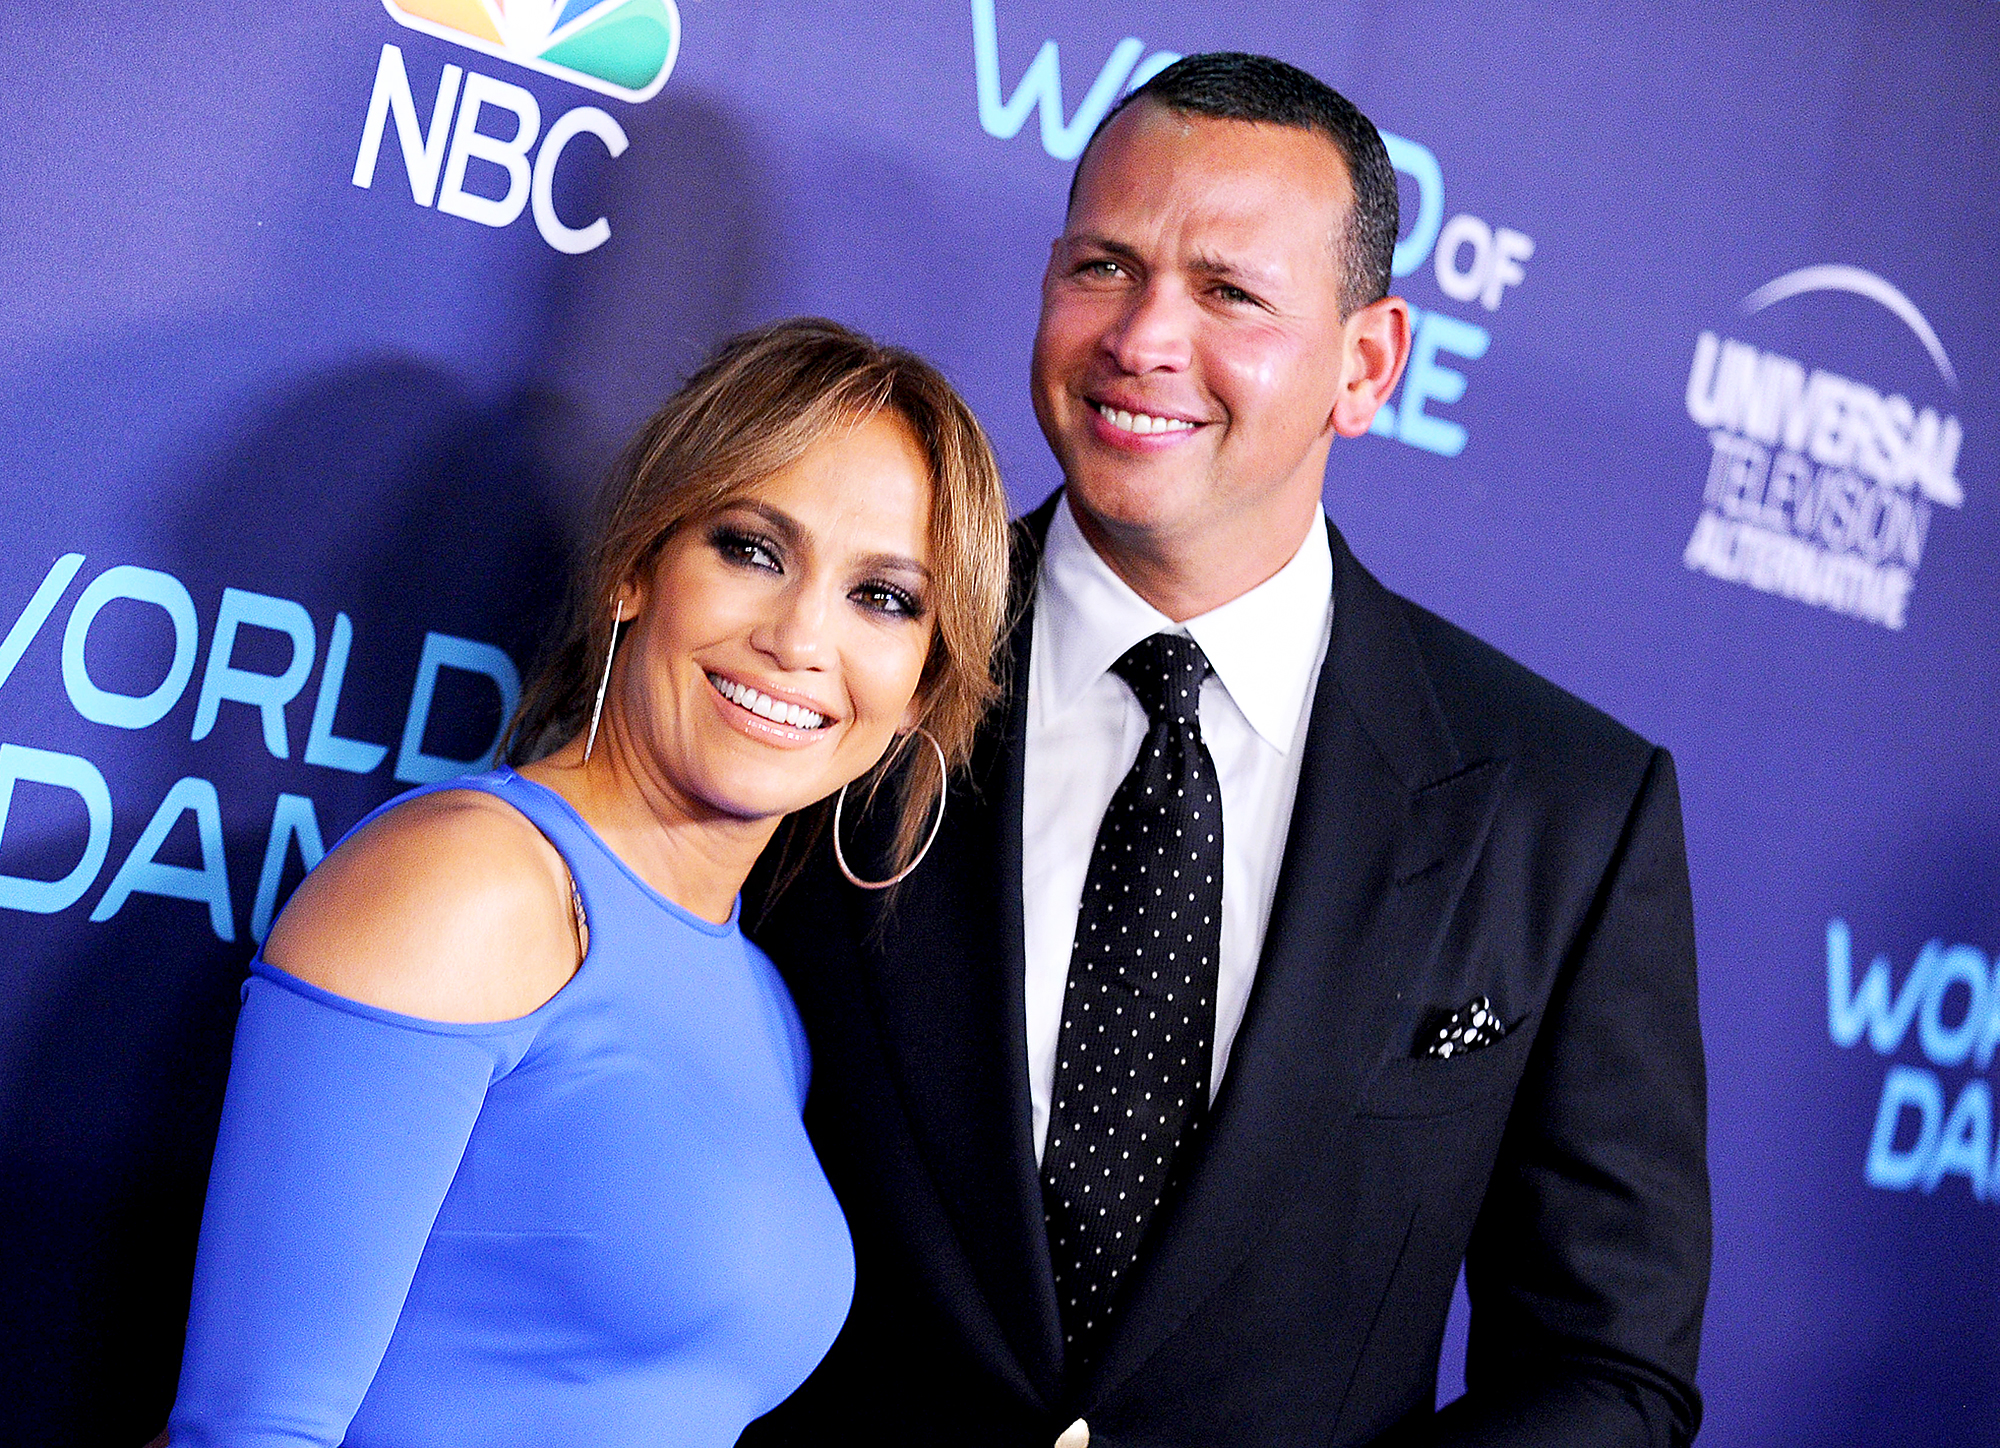 Who is j lo hookup in 2019